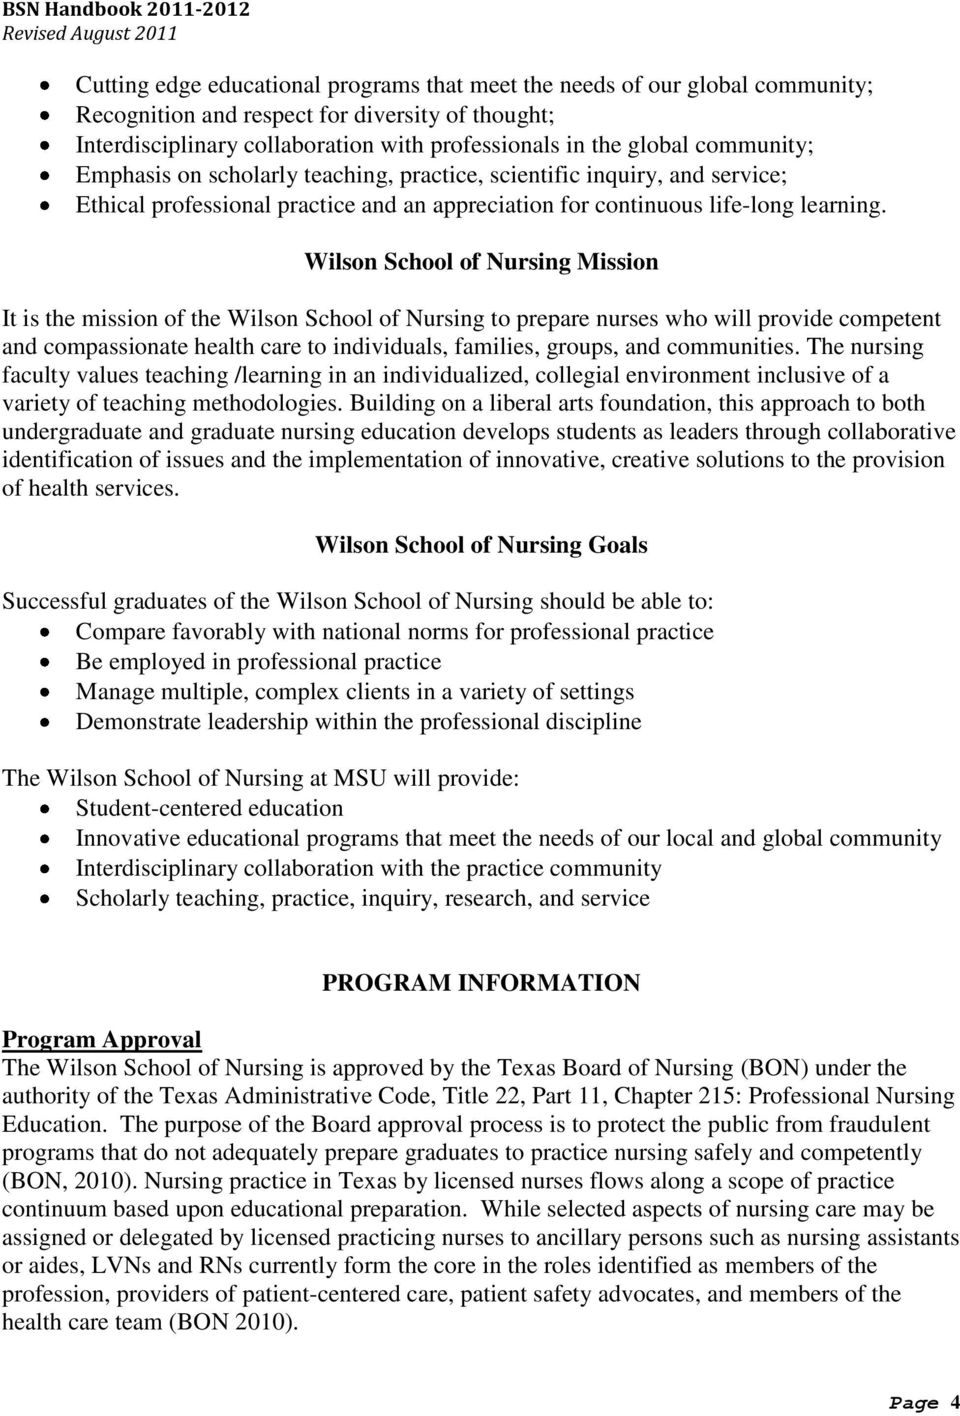 Wilson School of Nursing Mission It is the mission of the Wilson School of Nursing to prepare nurses who will provide competent and compassionate health care to individuals, families, groups, and